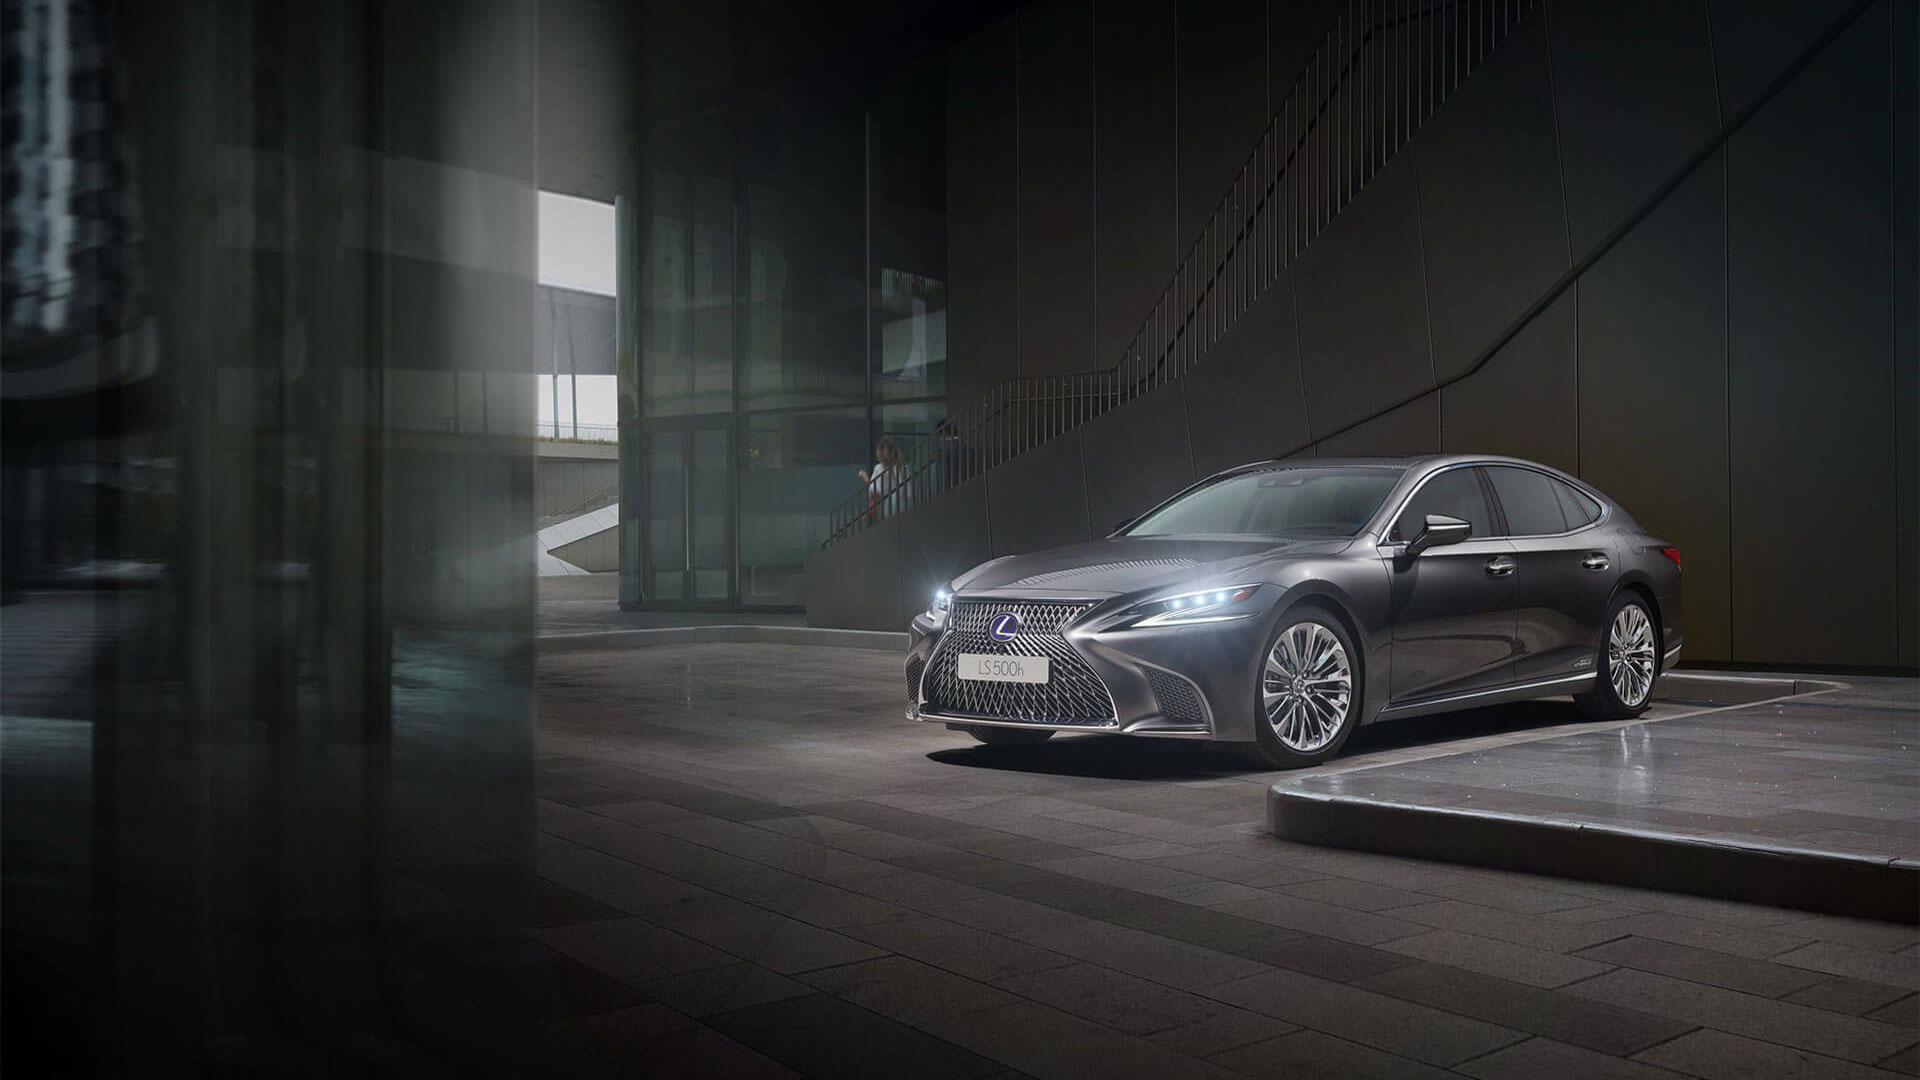 2017 lexus hybrid for business hero ls cinemagraph fallback